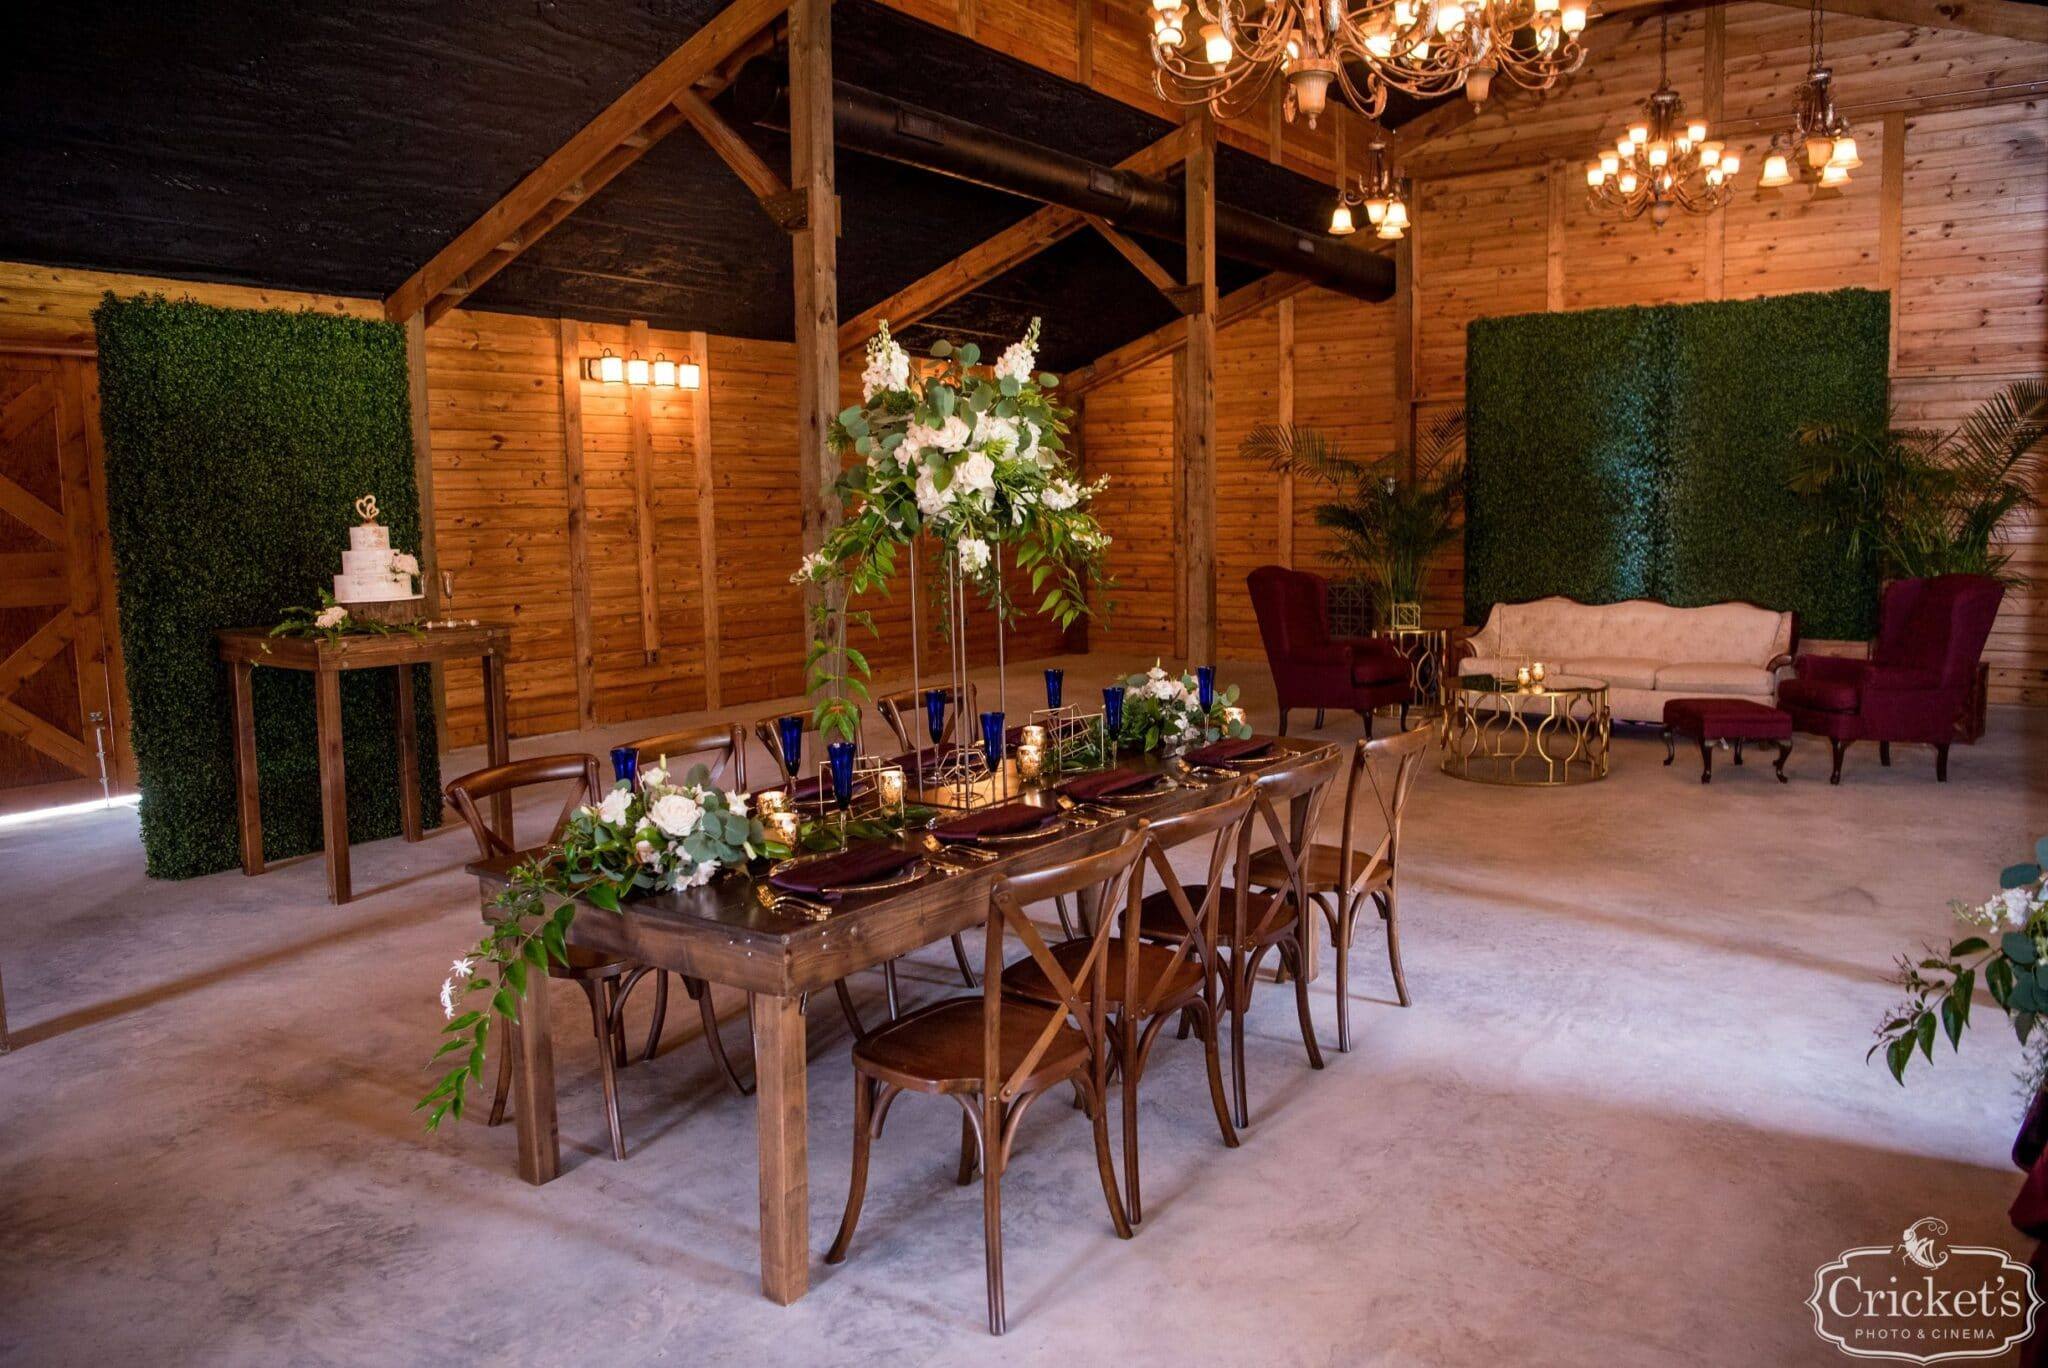 Planning a small wedding at a barn wedding venue in Central Florida